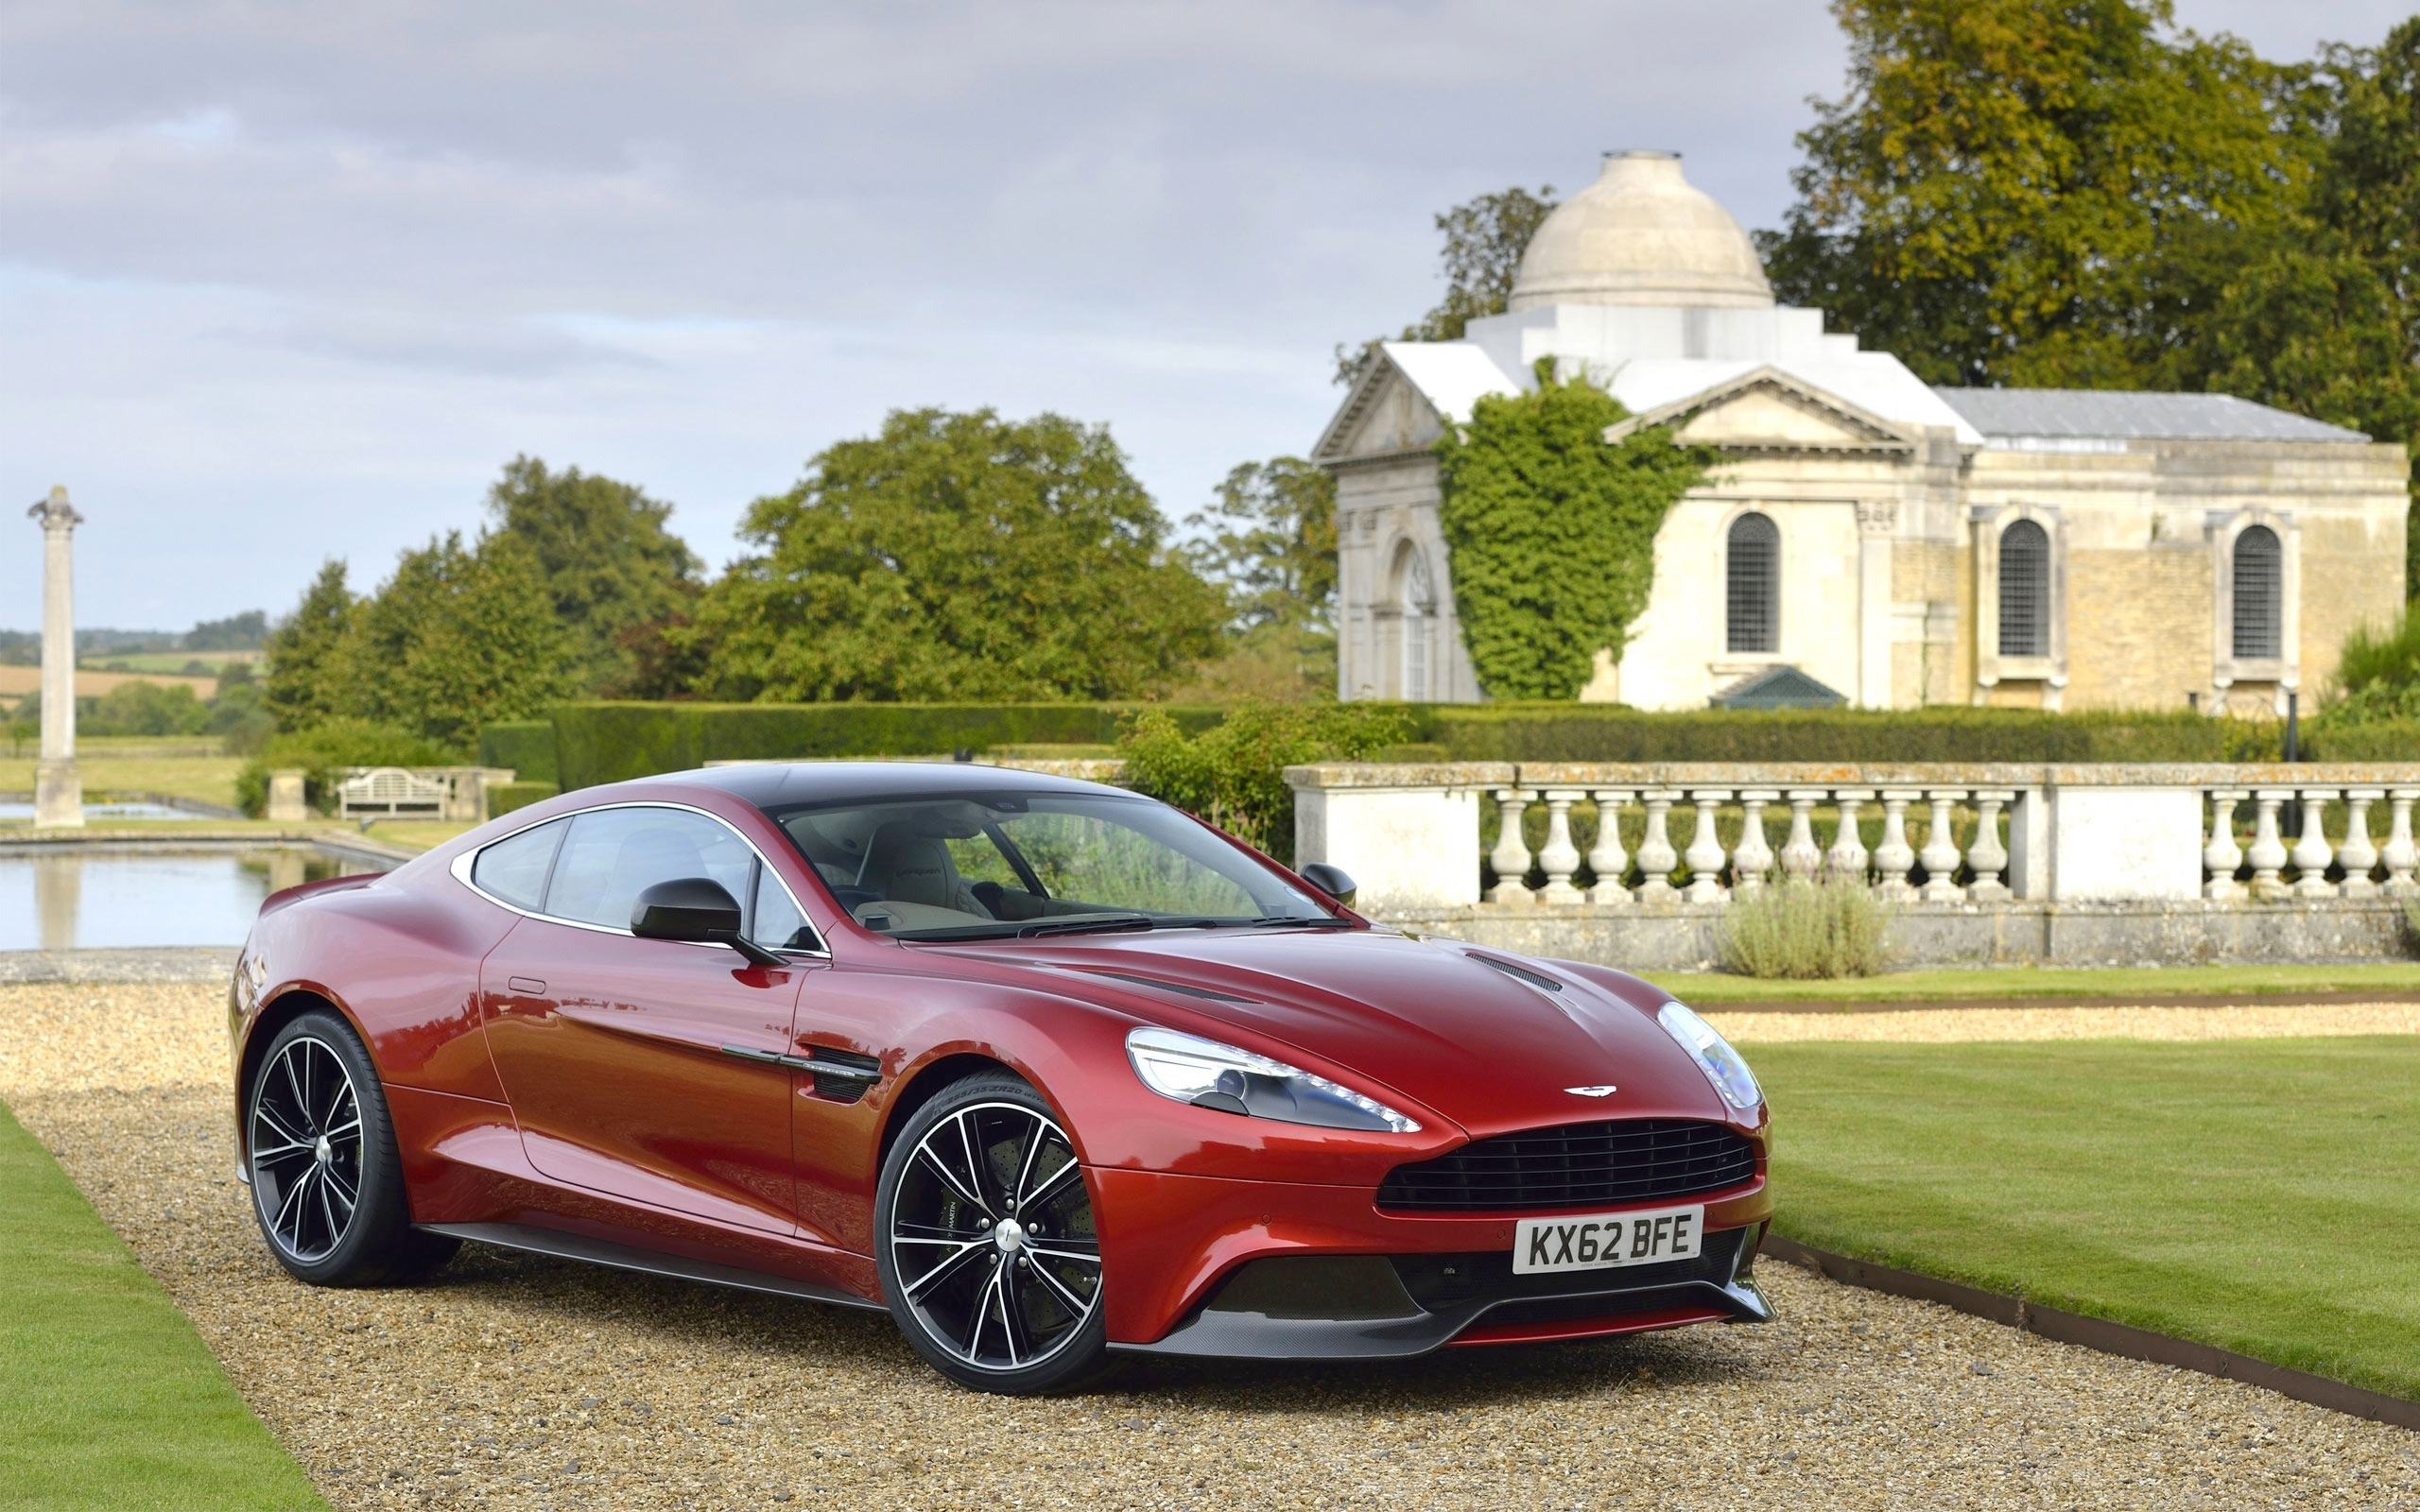 Nice Image Of Aston Martin, Desktop Wallpaper Of AM310